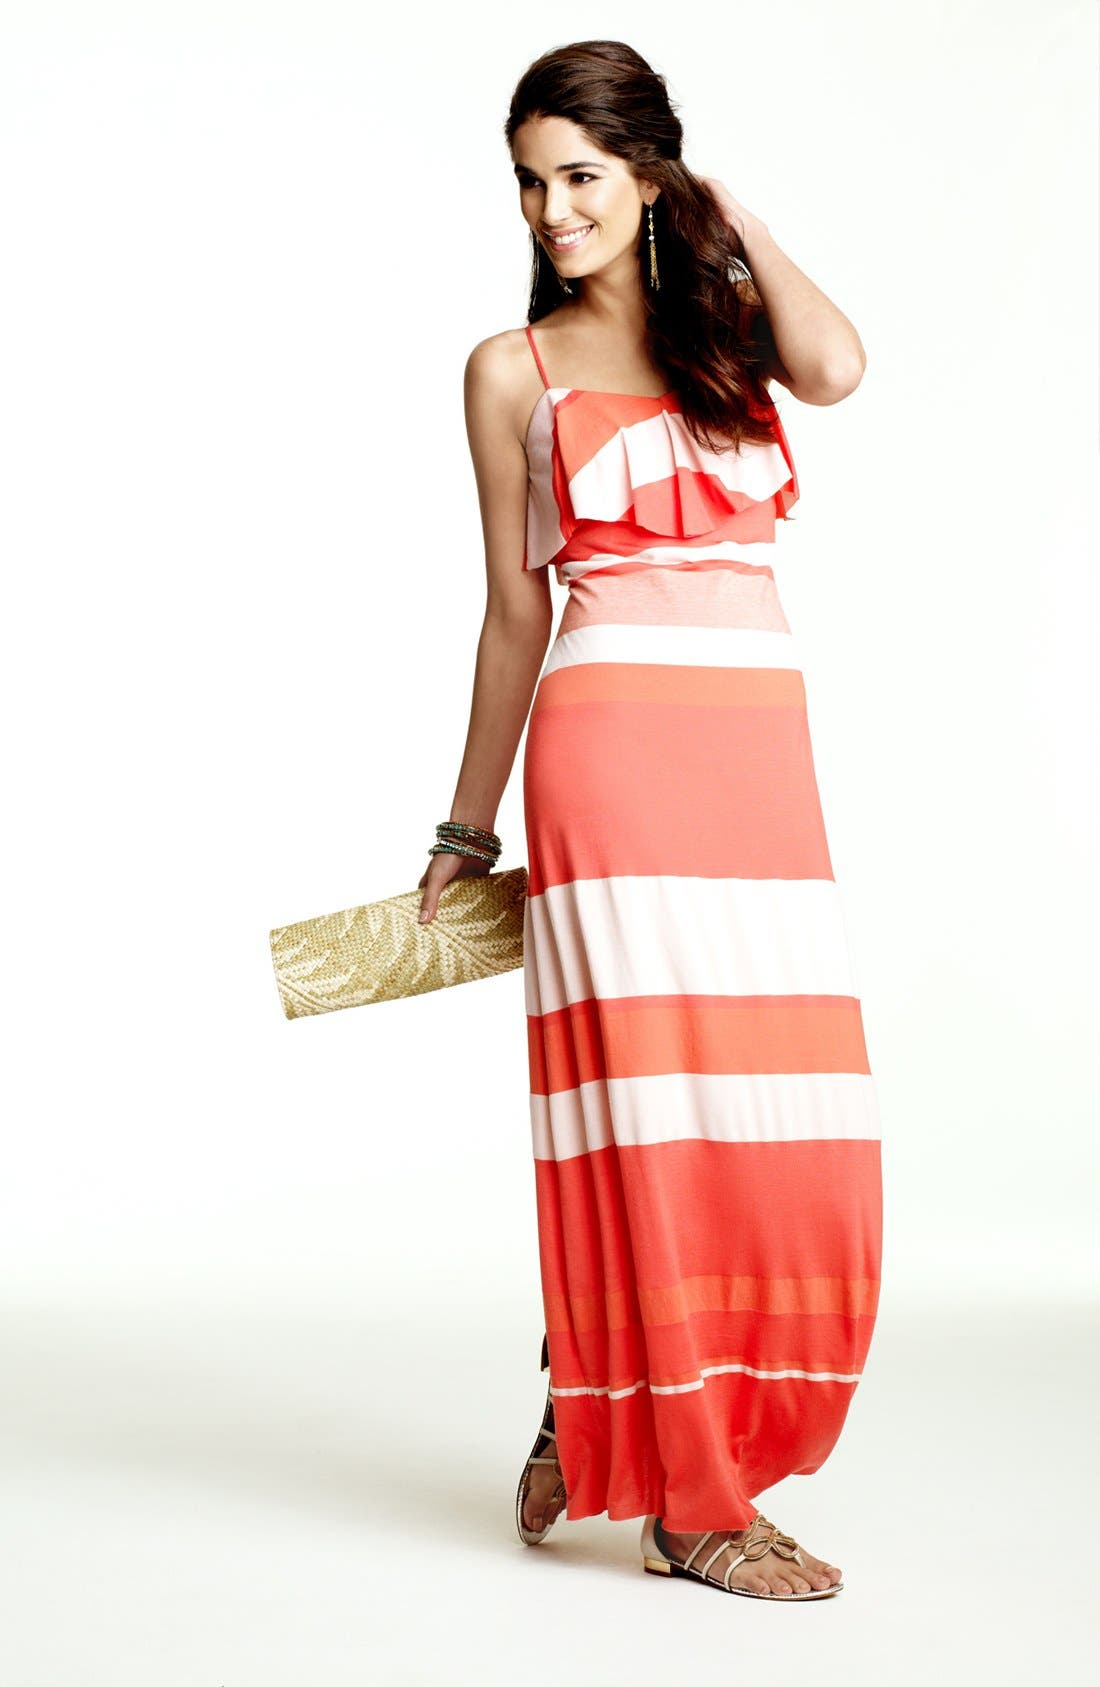 Main Image - Cynthia Steffe Maxi Dress & Accessories